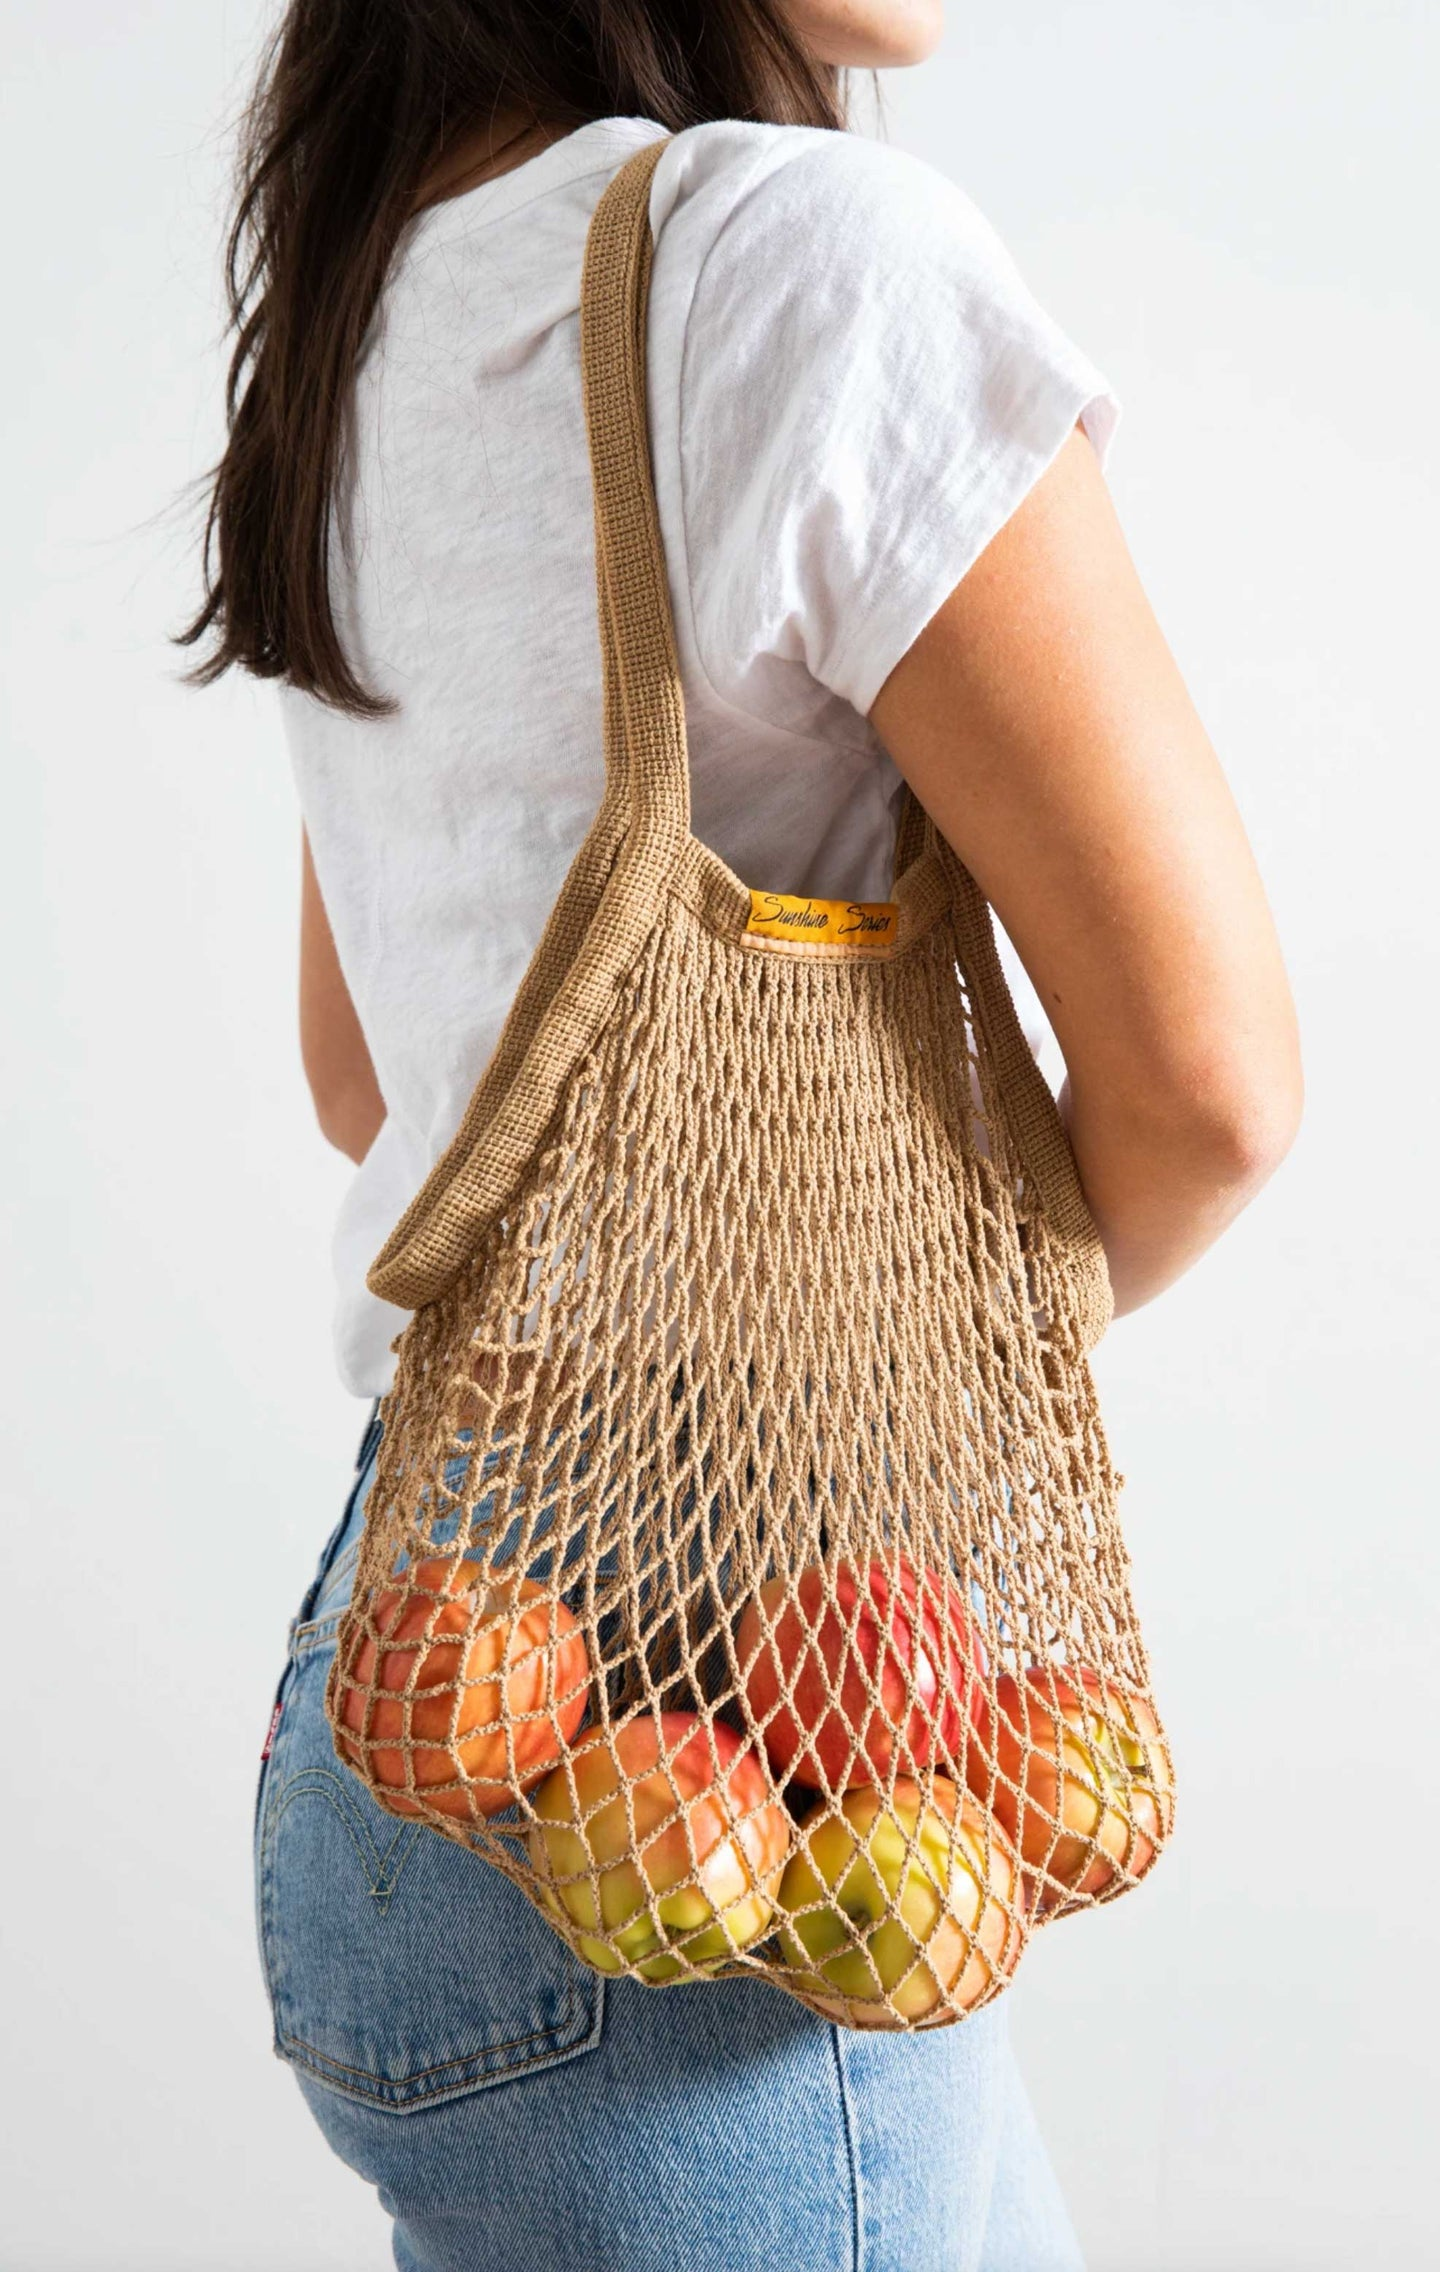 Botanical Dyed Organic Cotton Net Tote